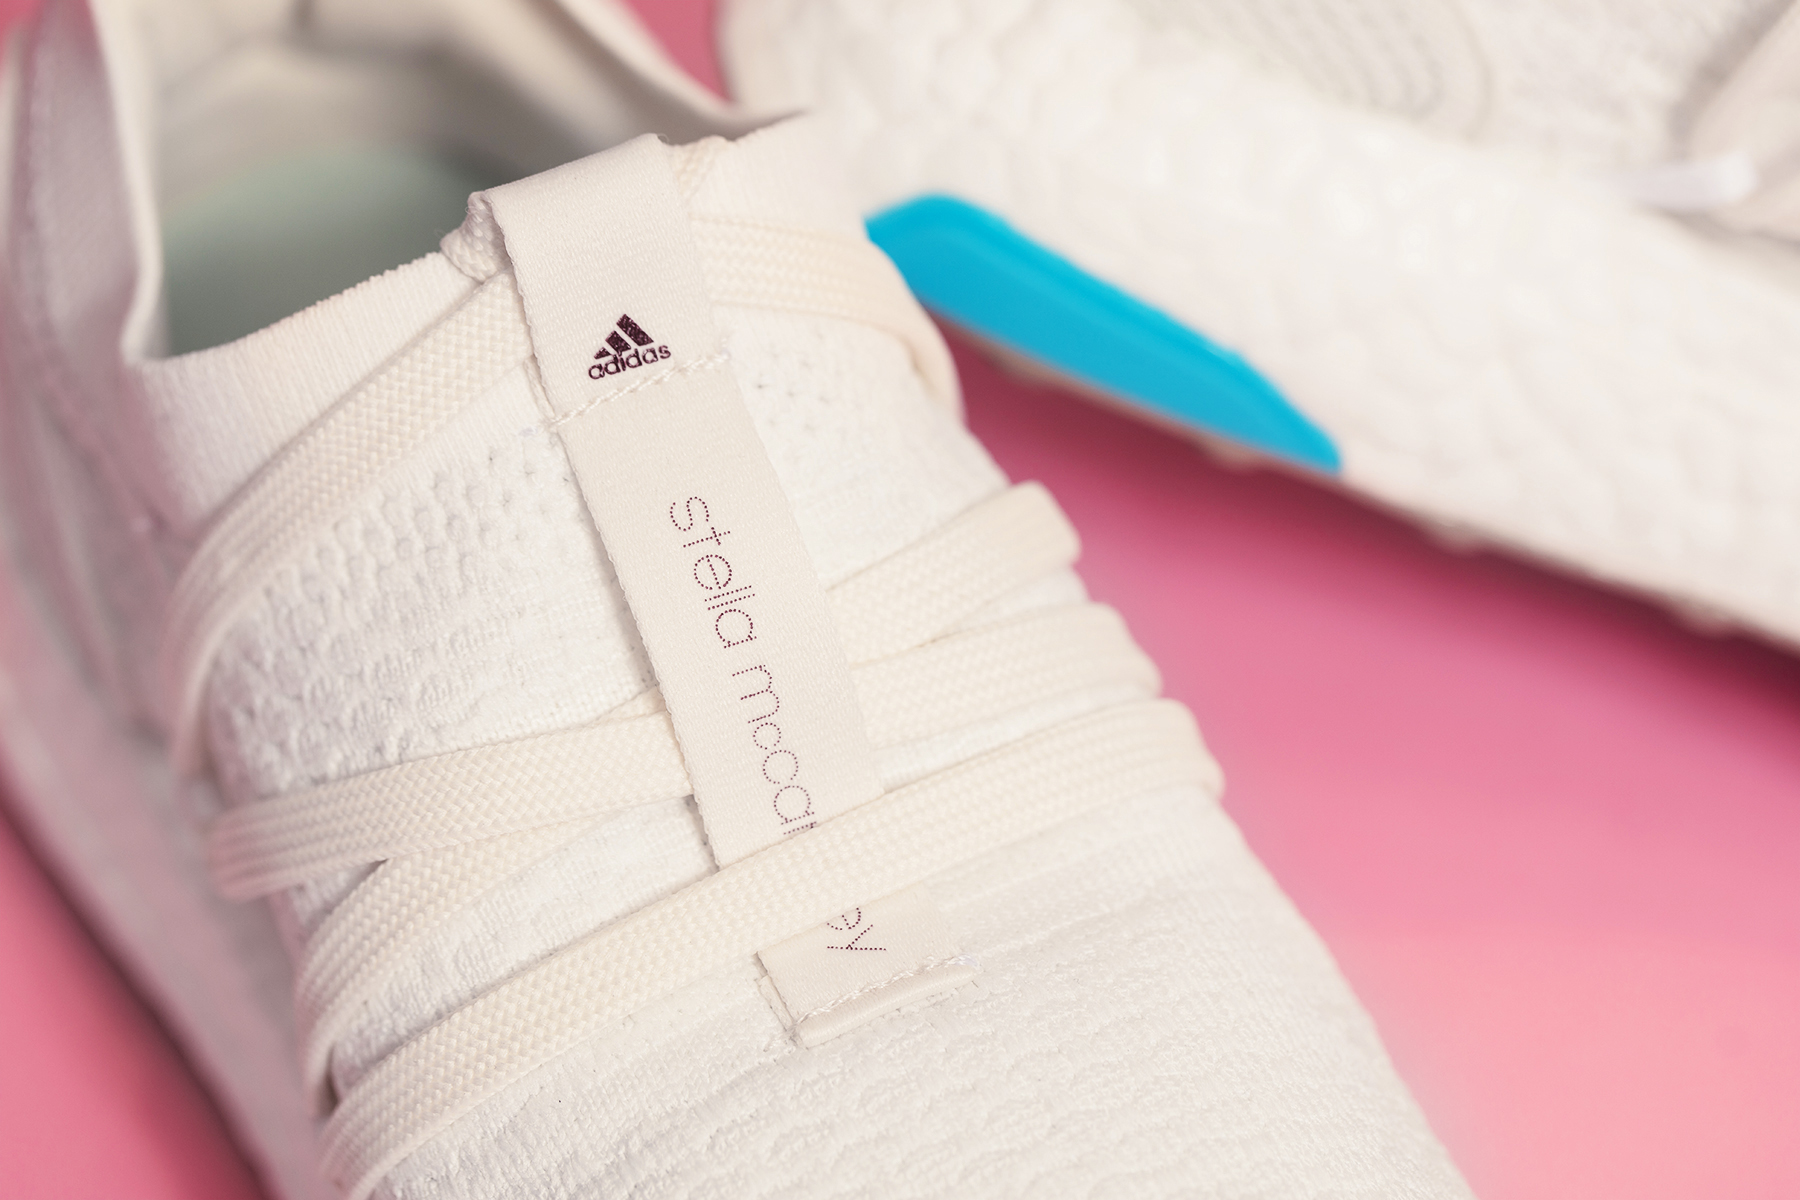 adidas by Stella McCartney Parley UltraBOOST X 2017 White